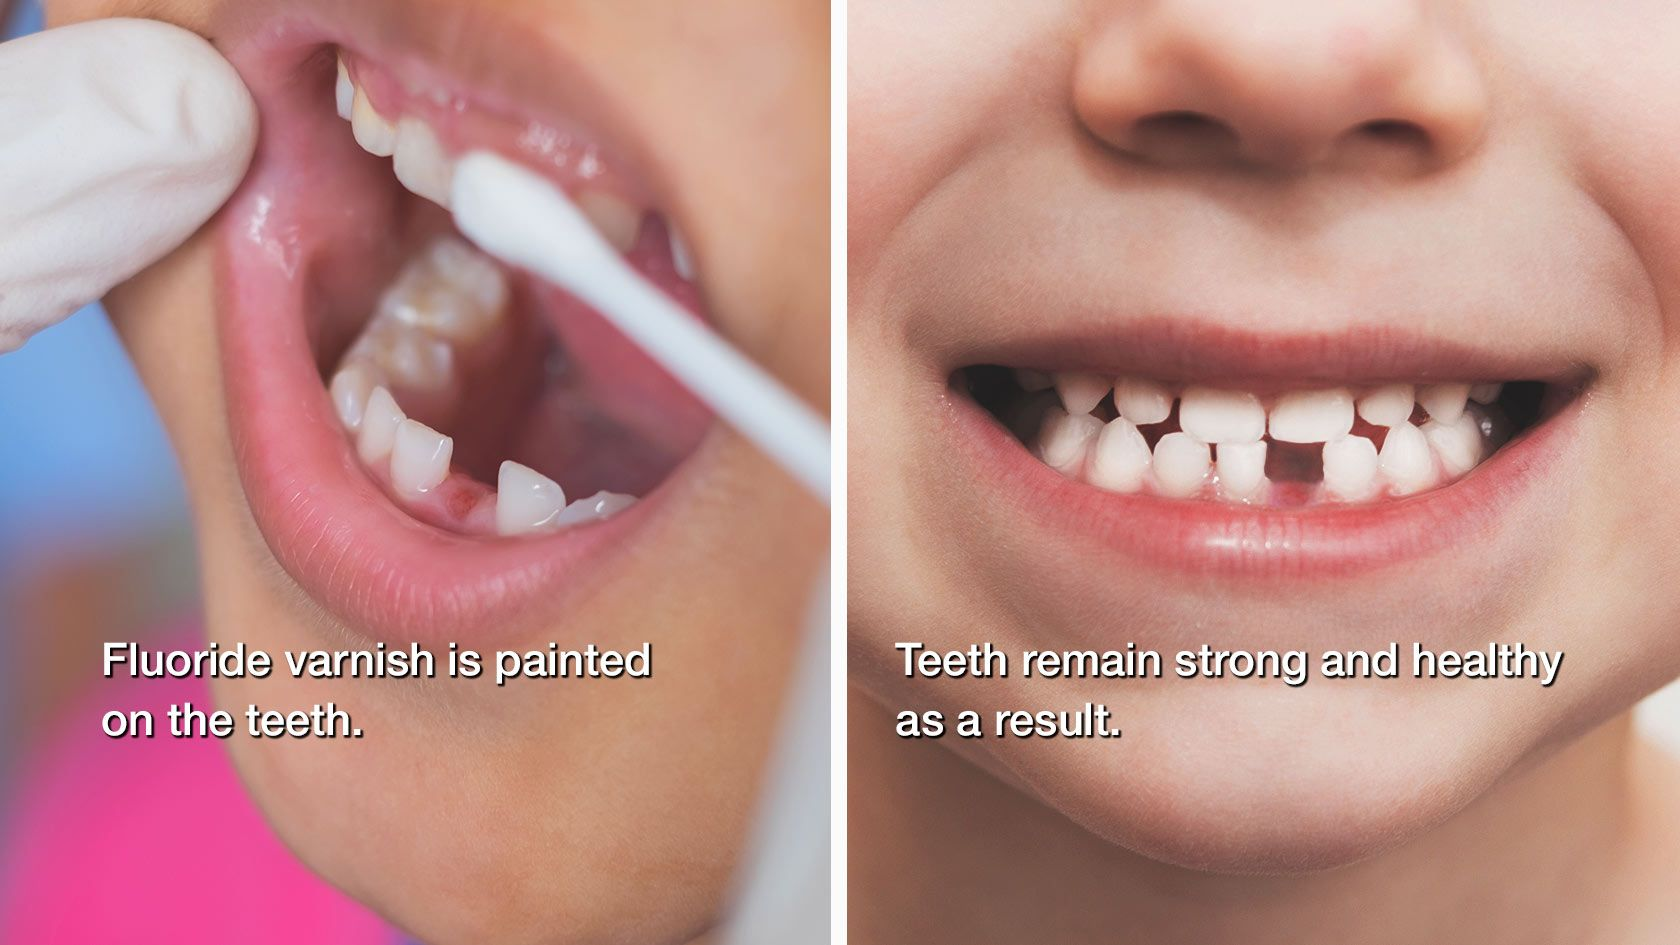 Child with missing teeth smiling as fluoride is applied to their teeth